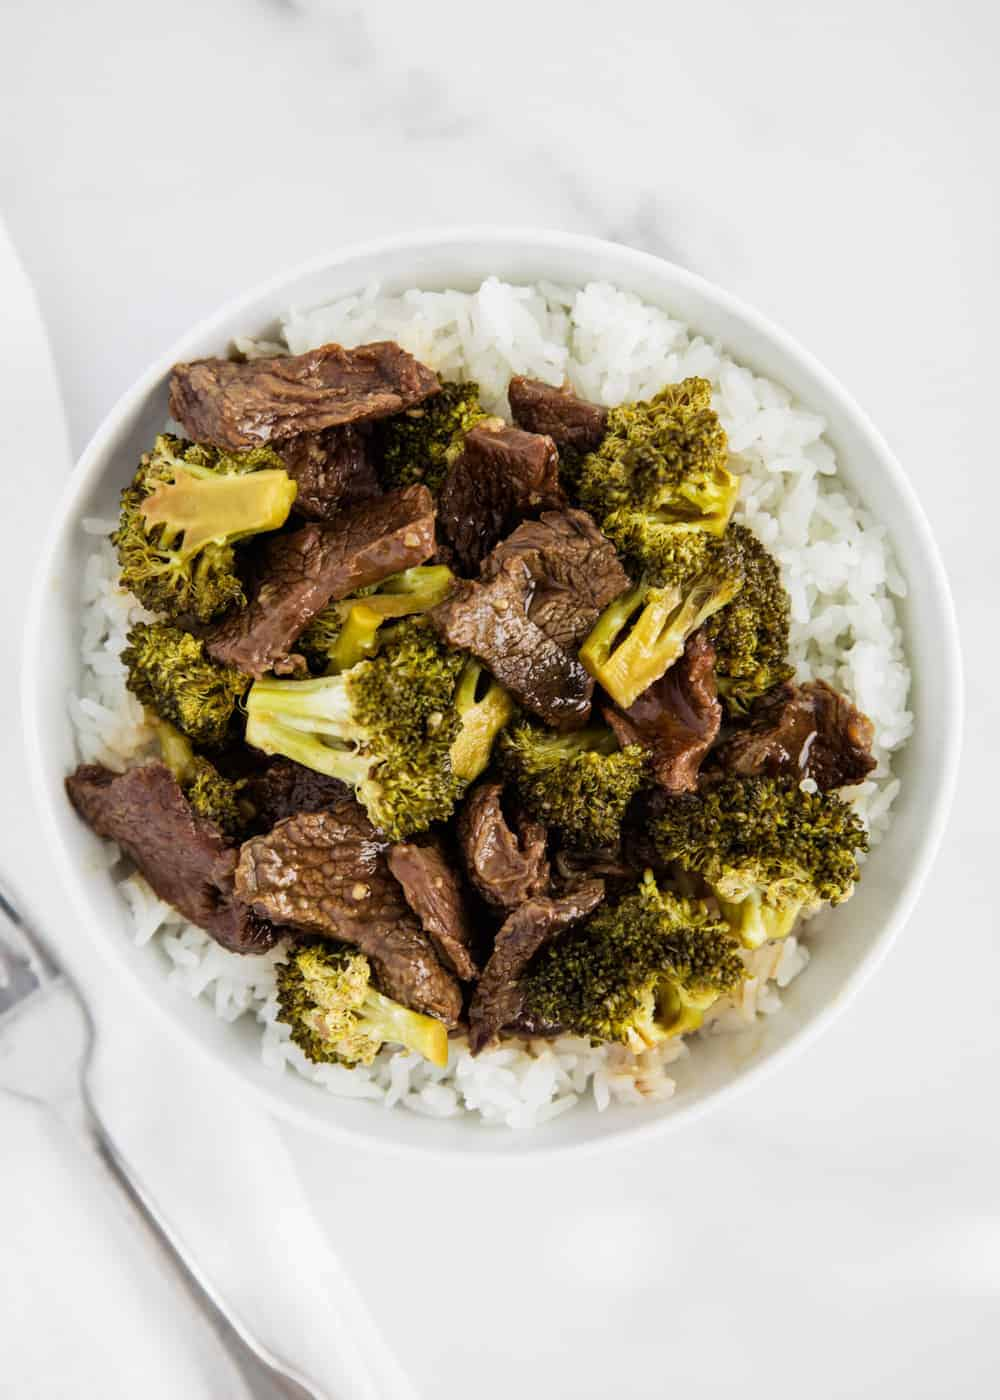 beef and broccoli in white bowl